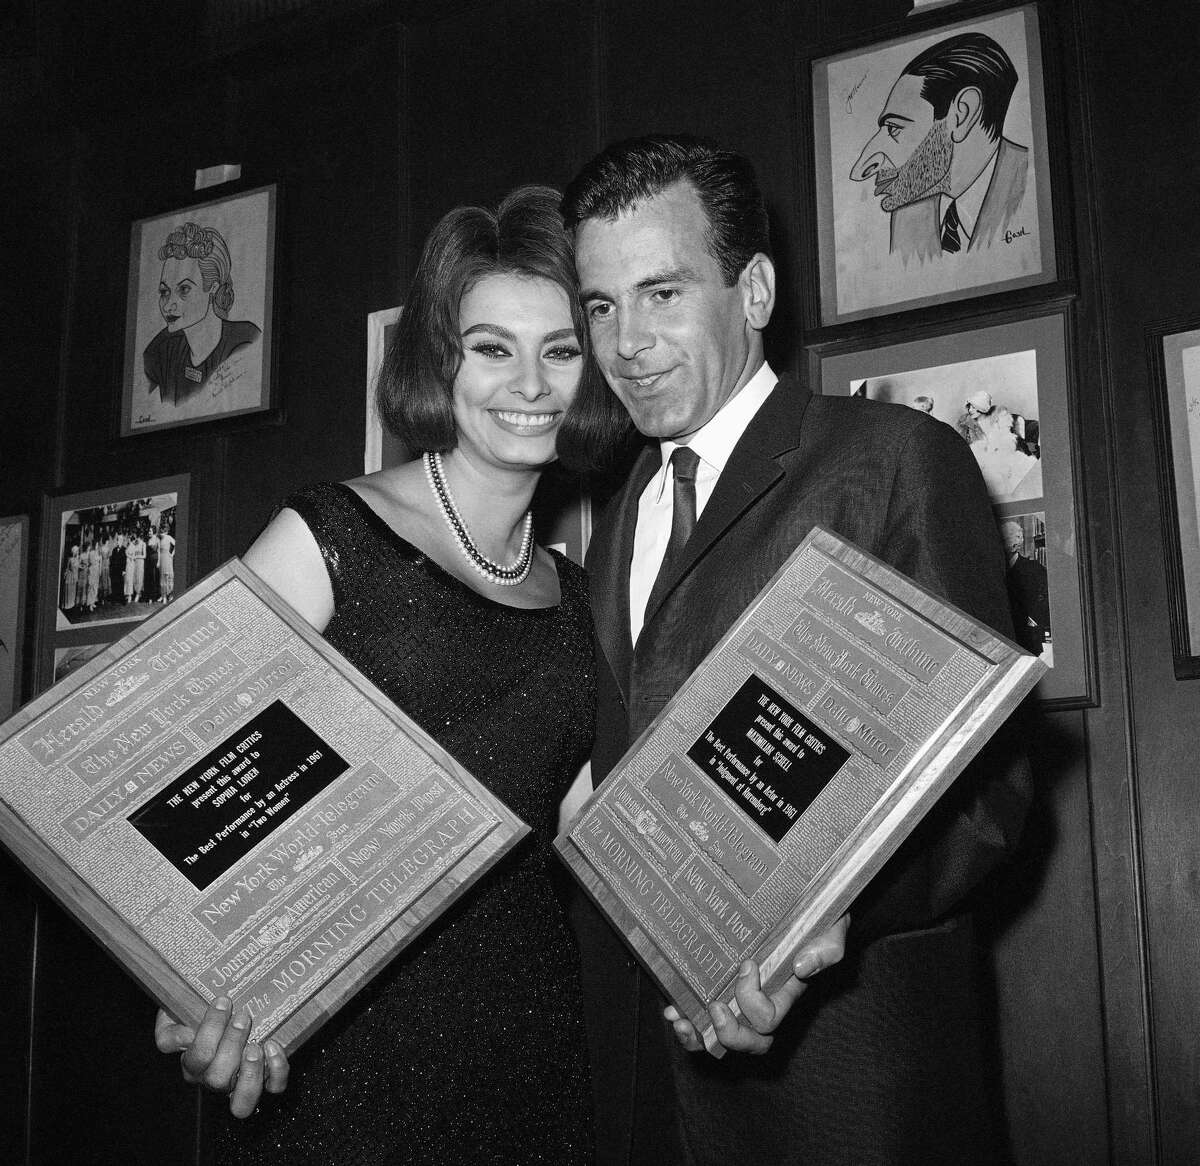 """FILE - In a Jan. 20, 1962 file photo, Maximilian Schell and Sophia Loren hold awards presented to them in New York by the New York Film Critics Circle. Schell was cited as best actor of 1961 for his role in """"Judgment at Nuremberg."""" Loren was acclaimed best actress of 1961 for her part in the movie """"Two Women."""""""